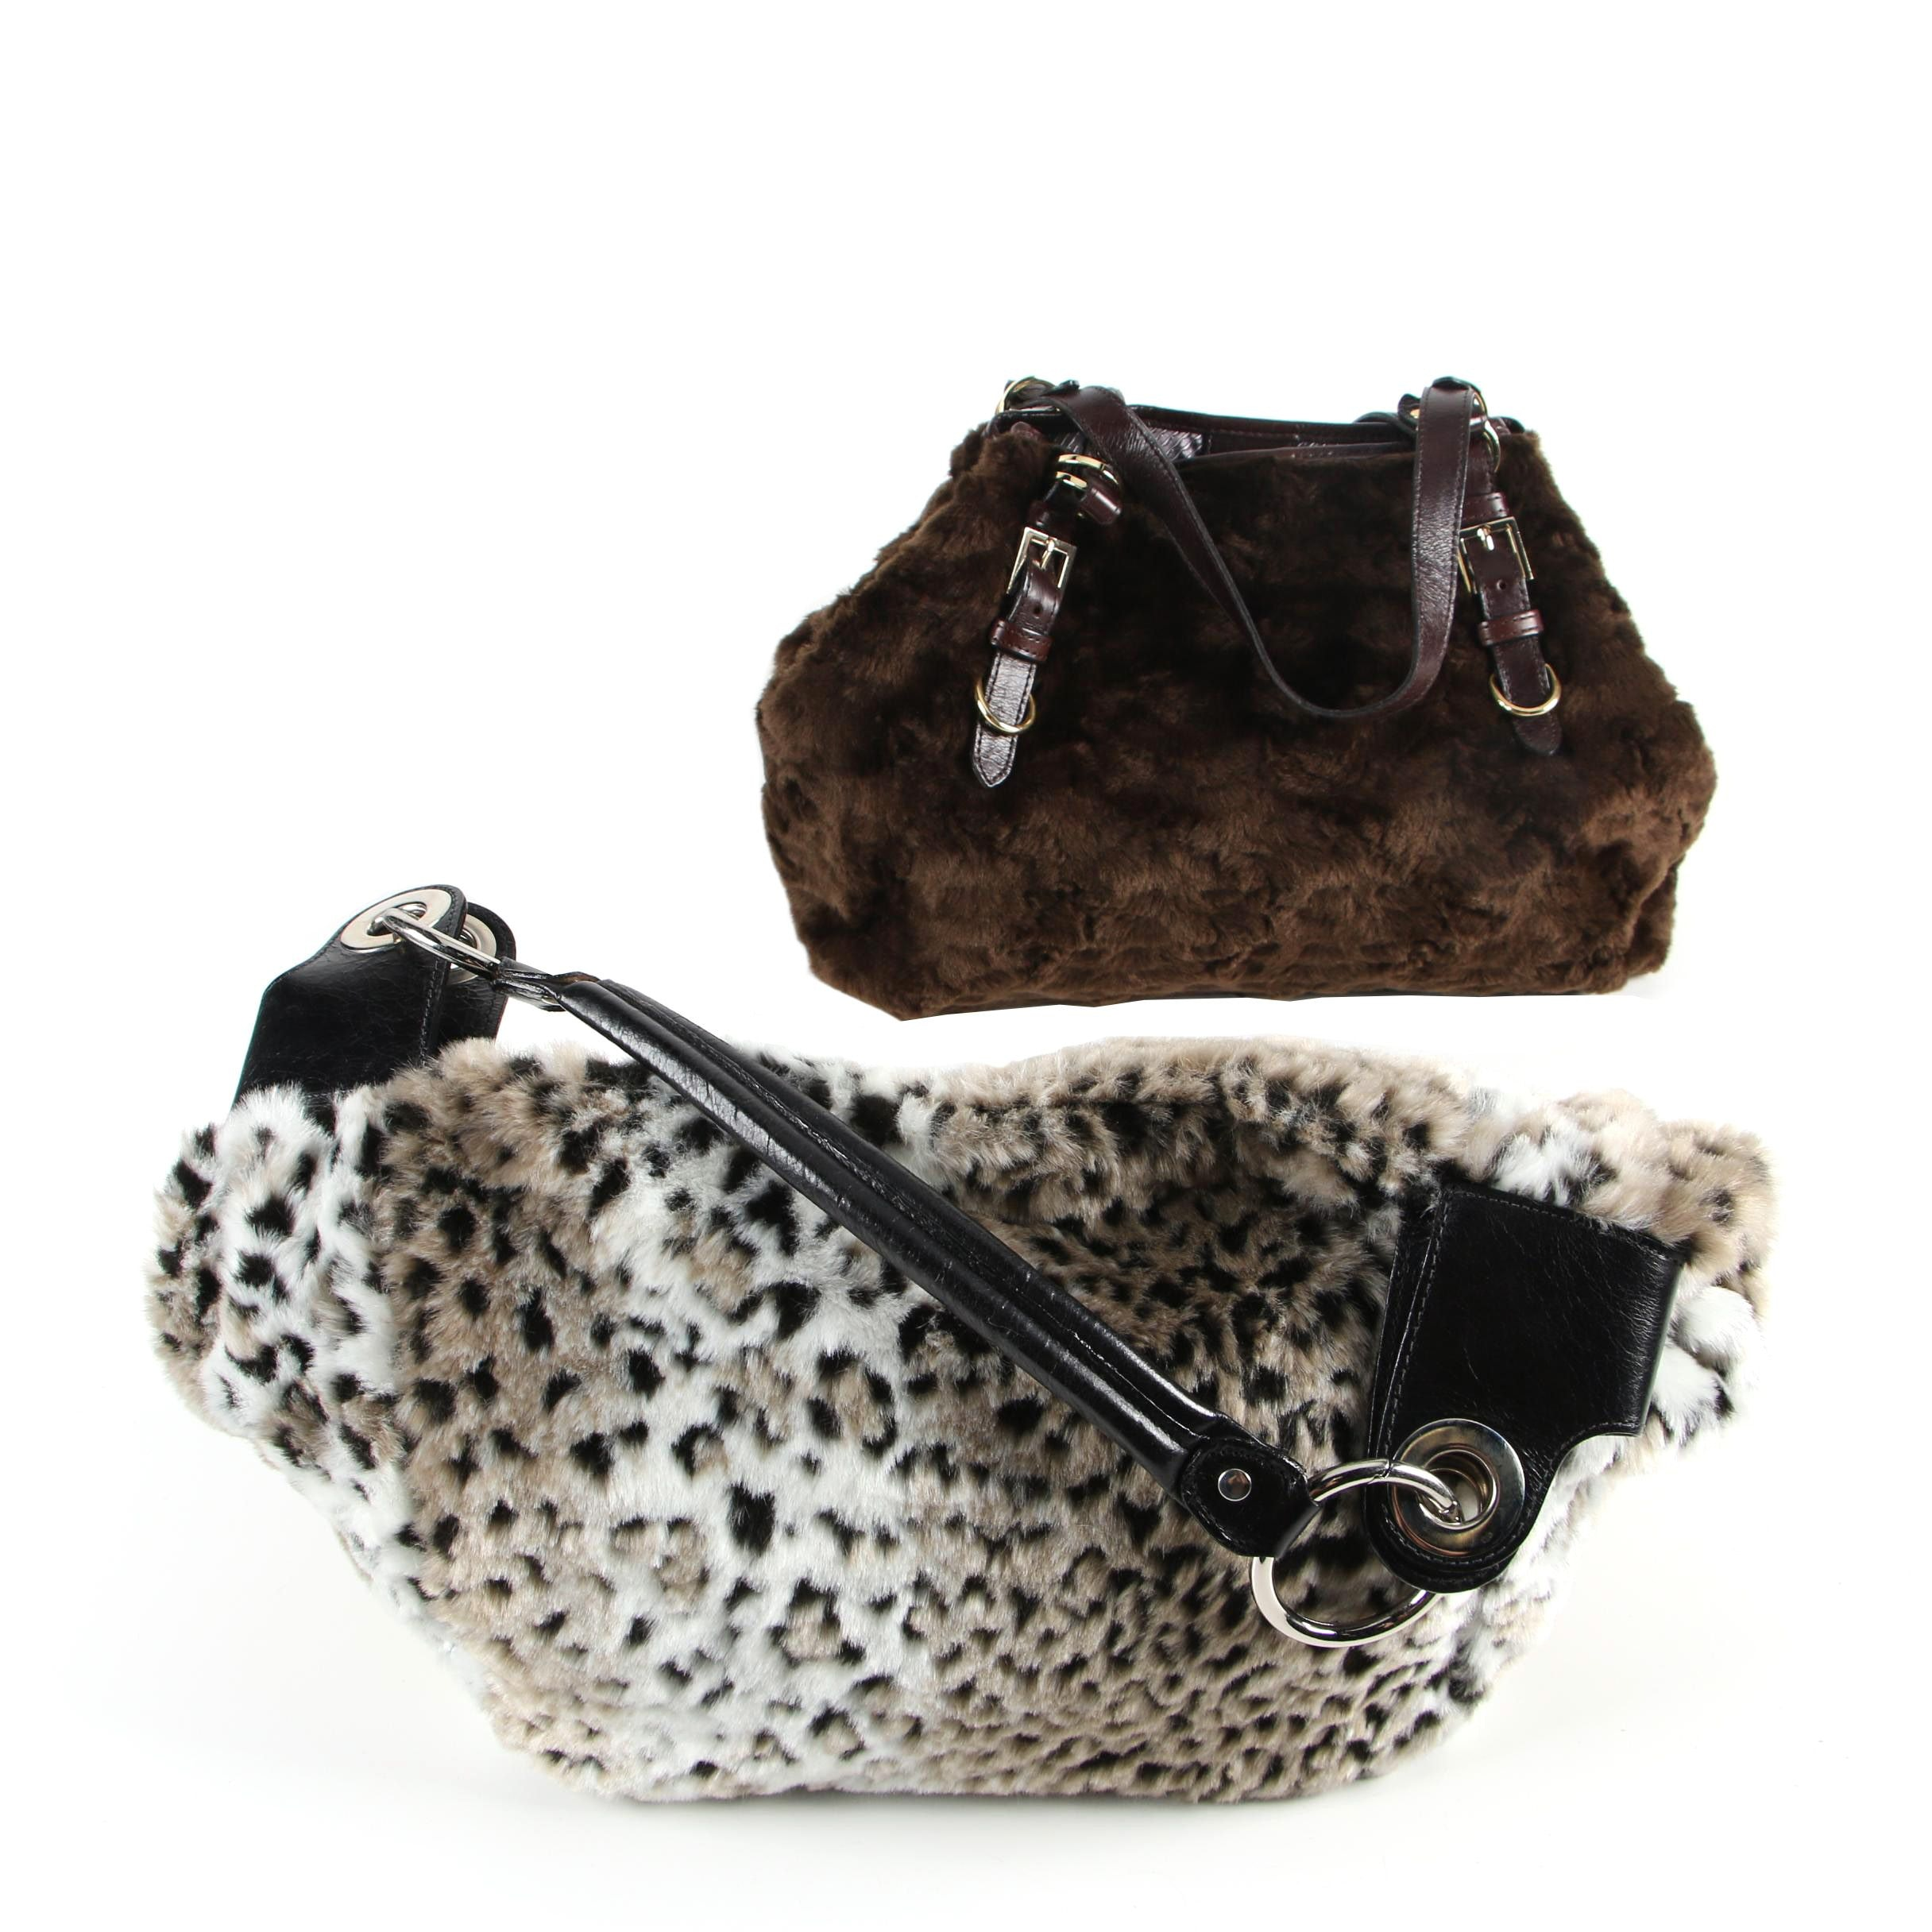 Glenda Gies Faux Fur and Leather Satchels